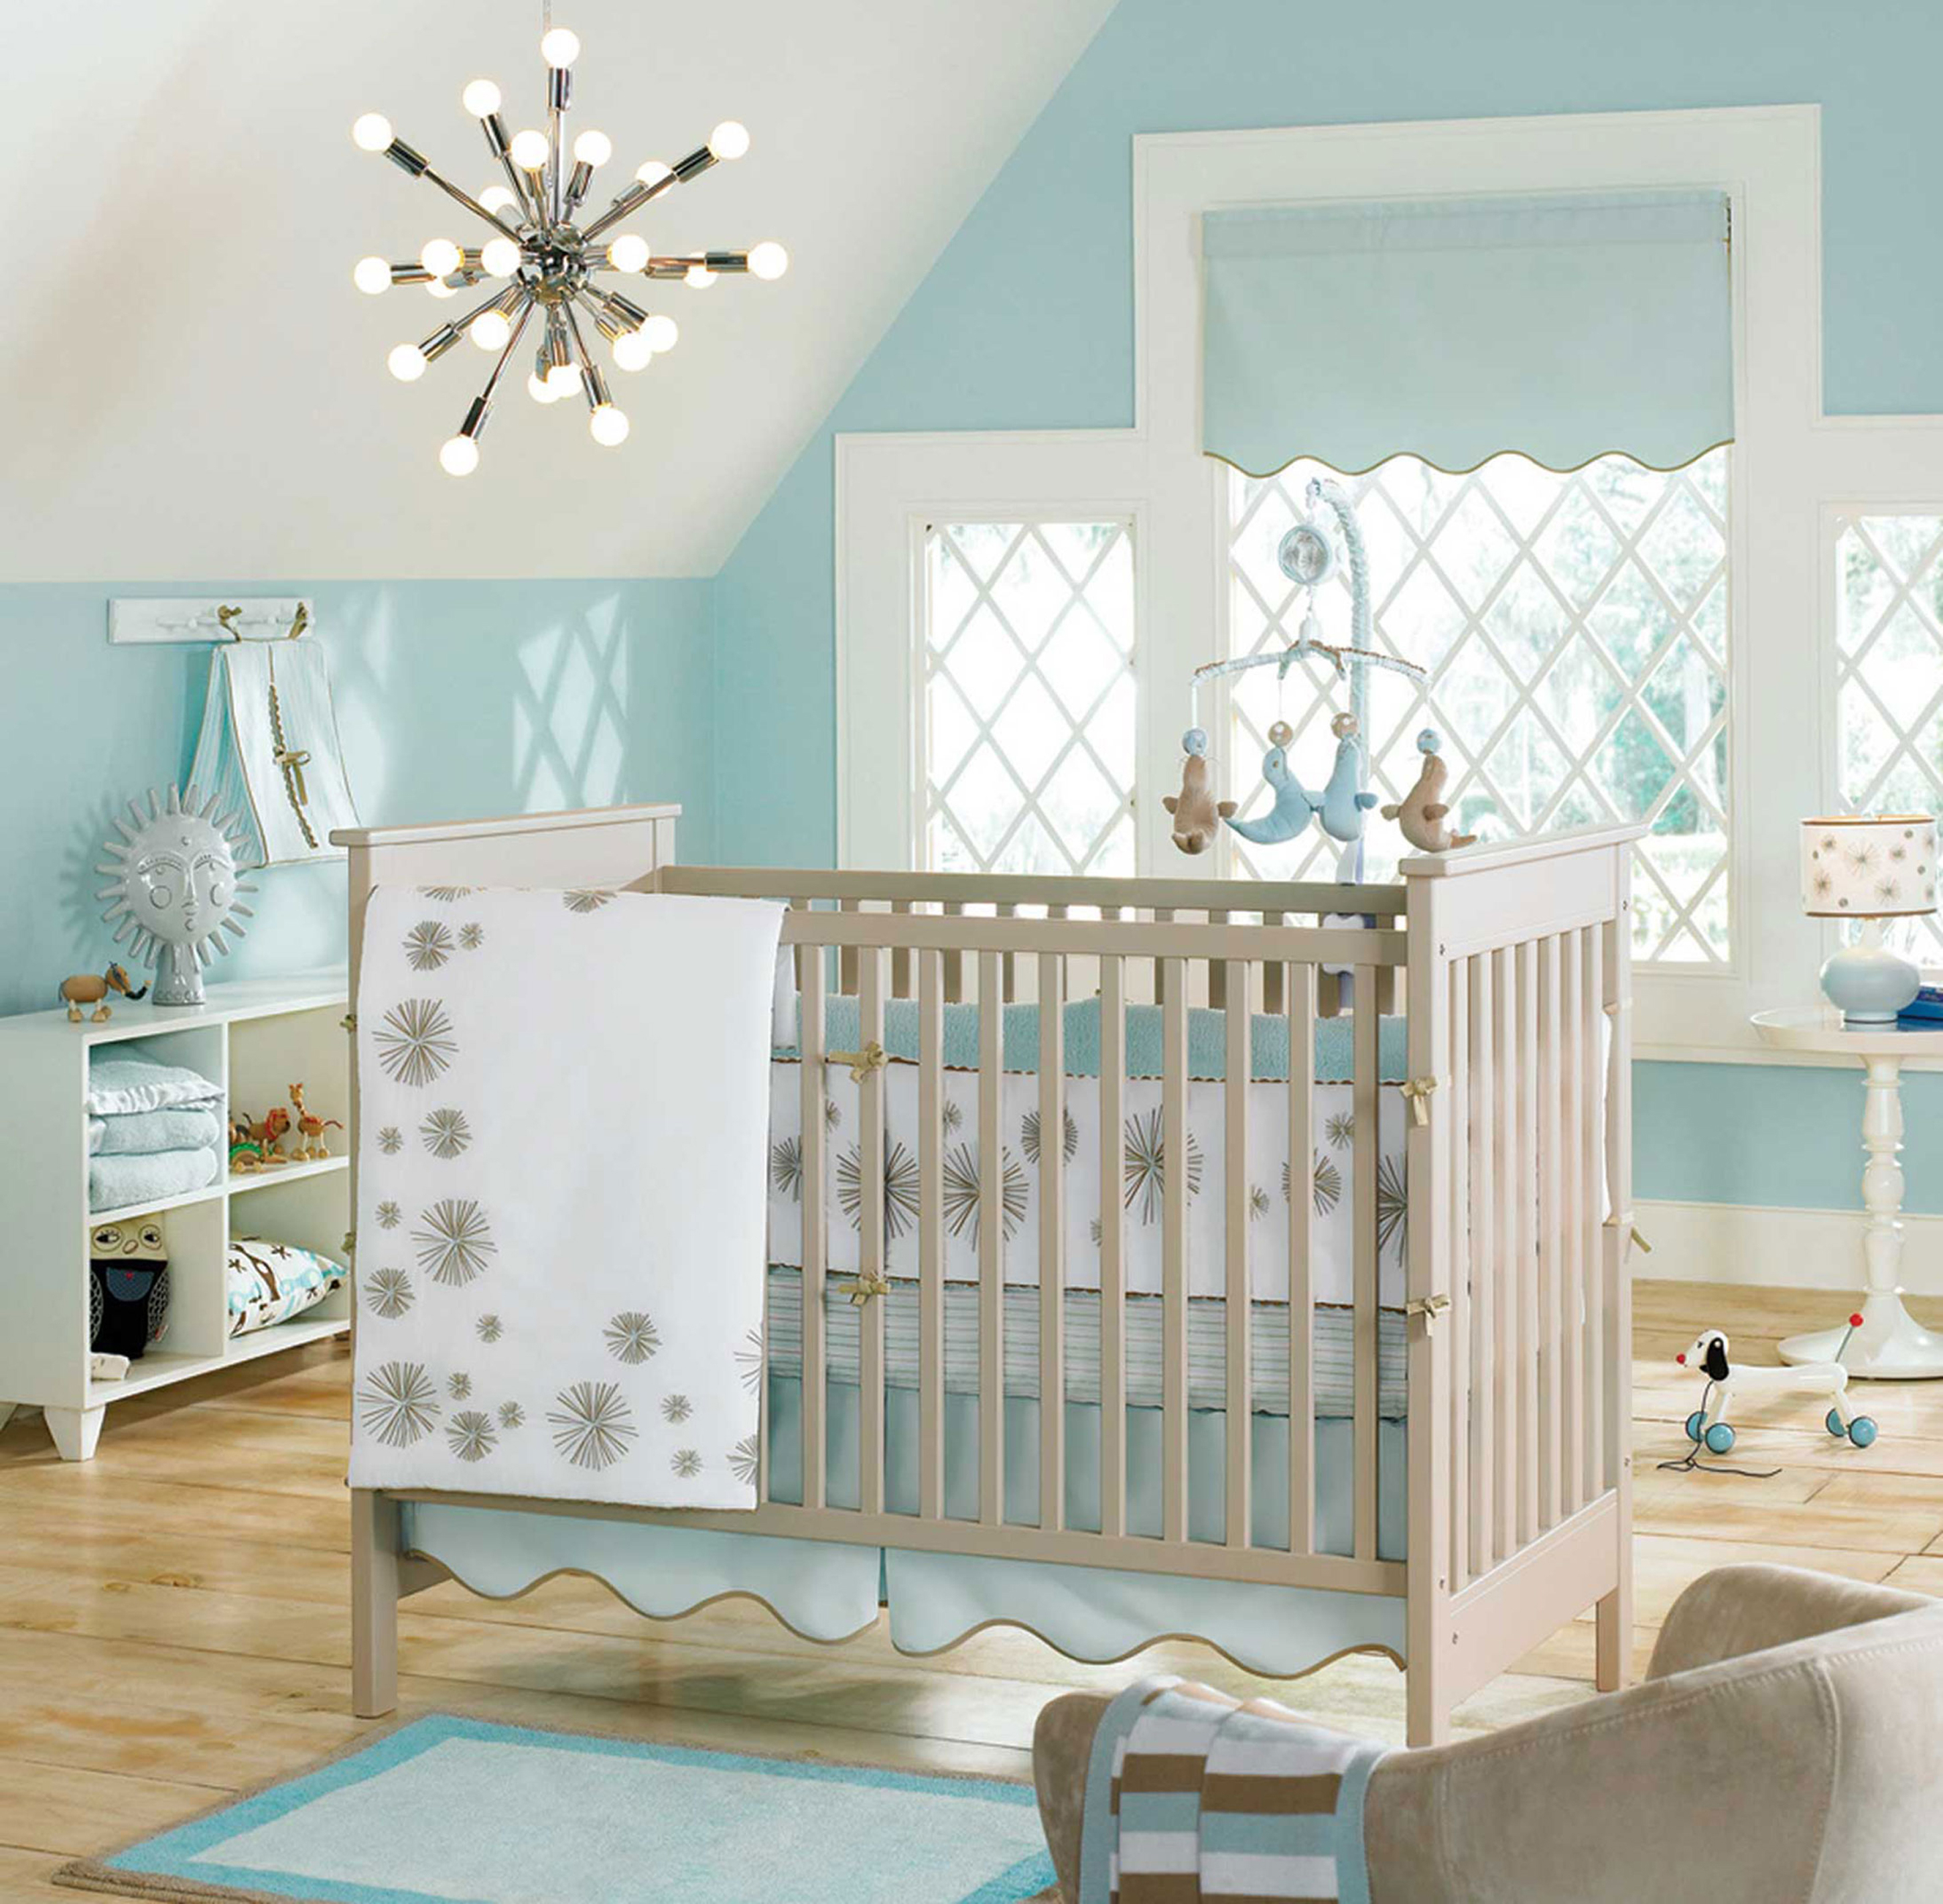 Luxury Baby Nursery Design Inspiration With Light Brown Crib With White Blanket Light Blue Wall And White Window Frames Pretty Baby Nursery Design Inspiration (Image 40 of 123)